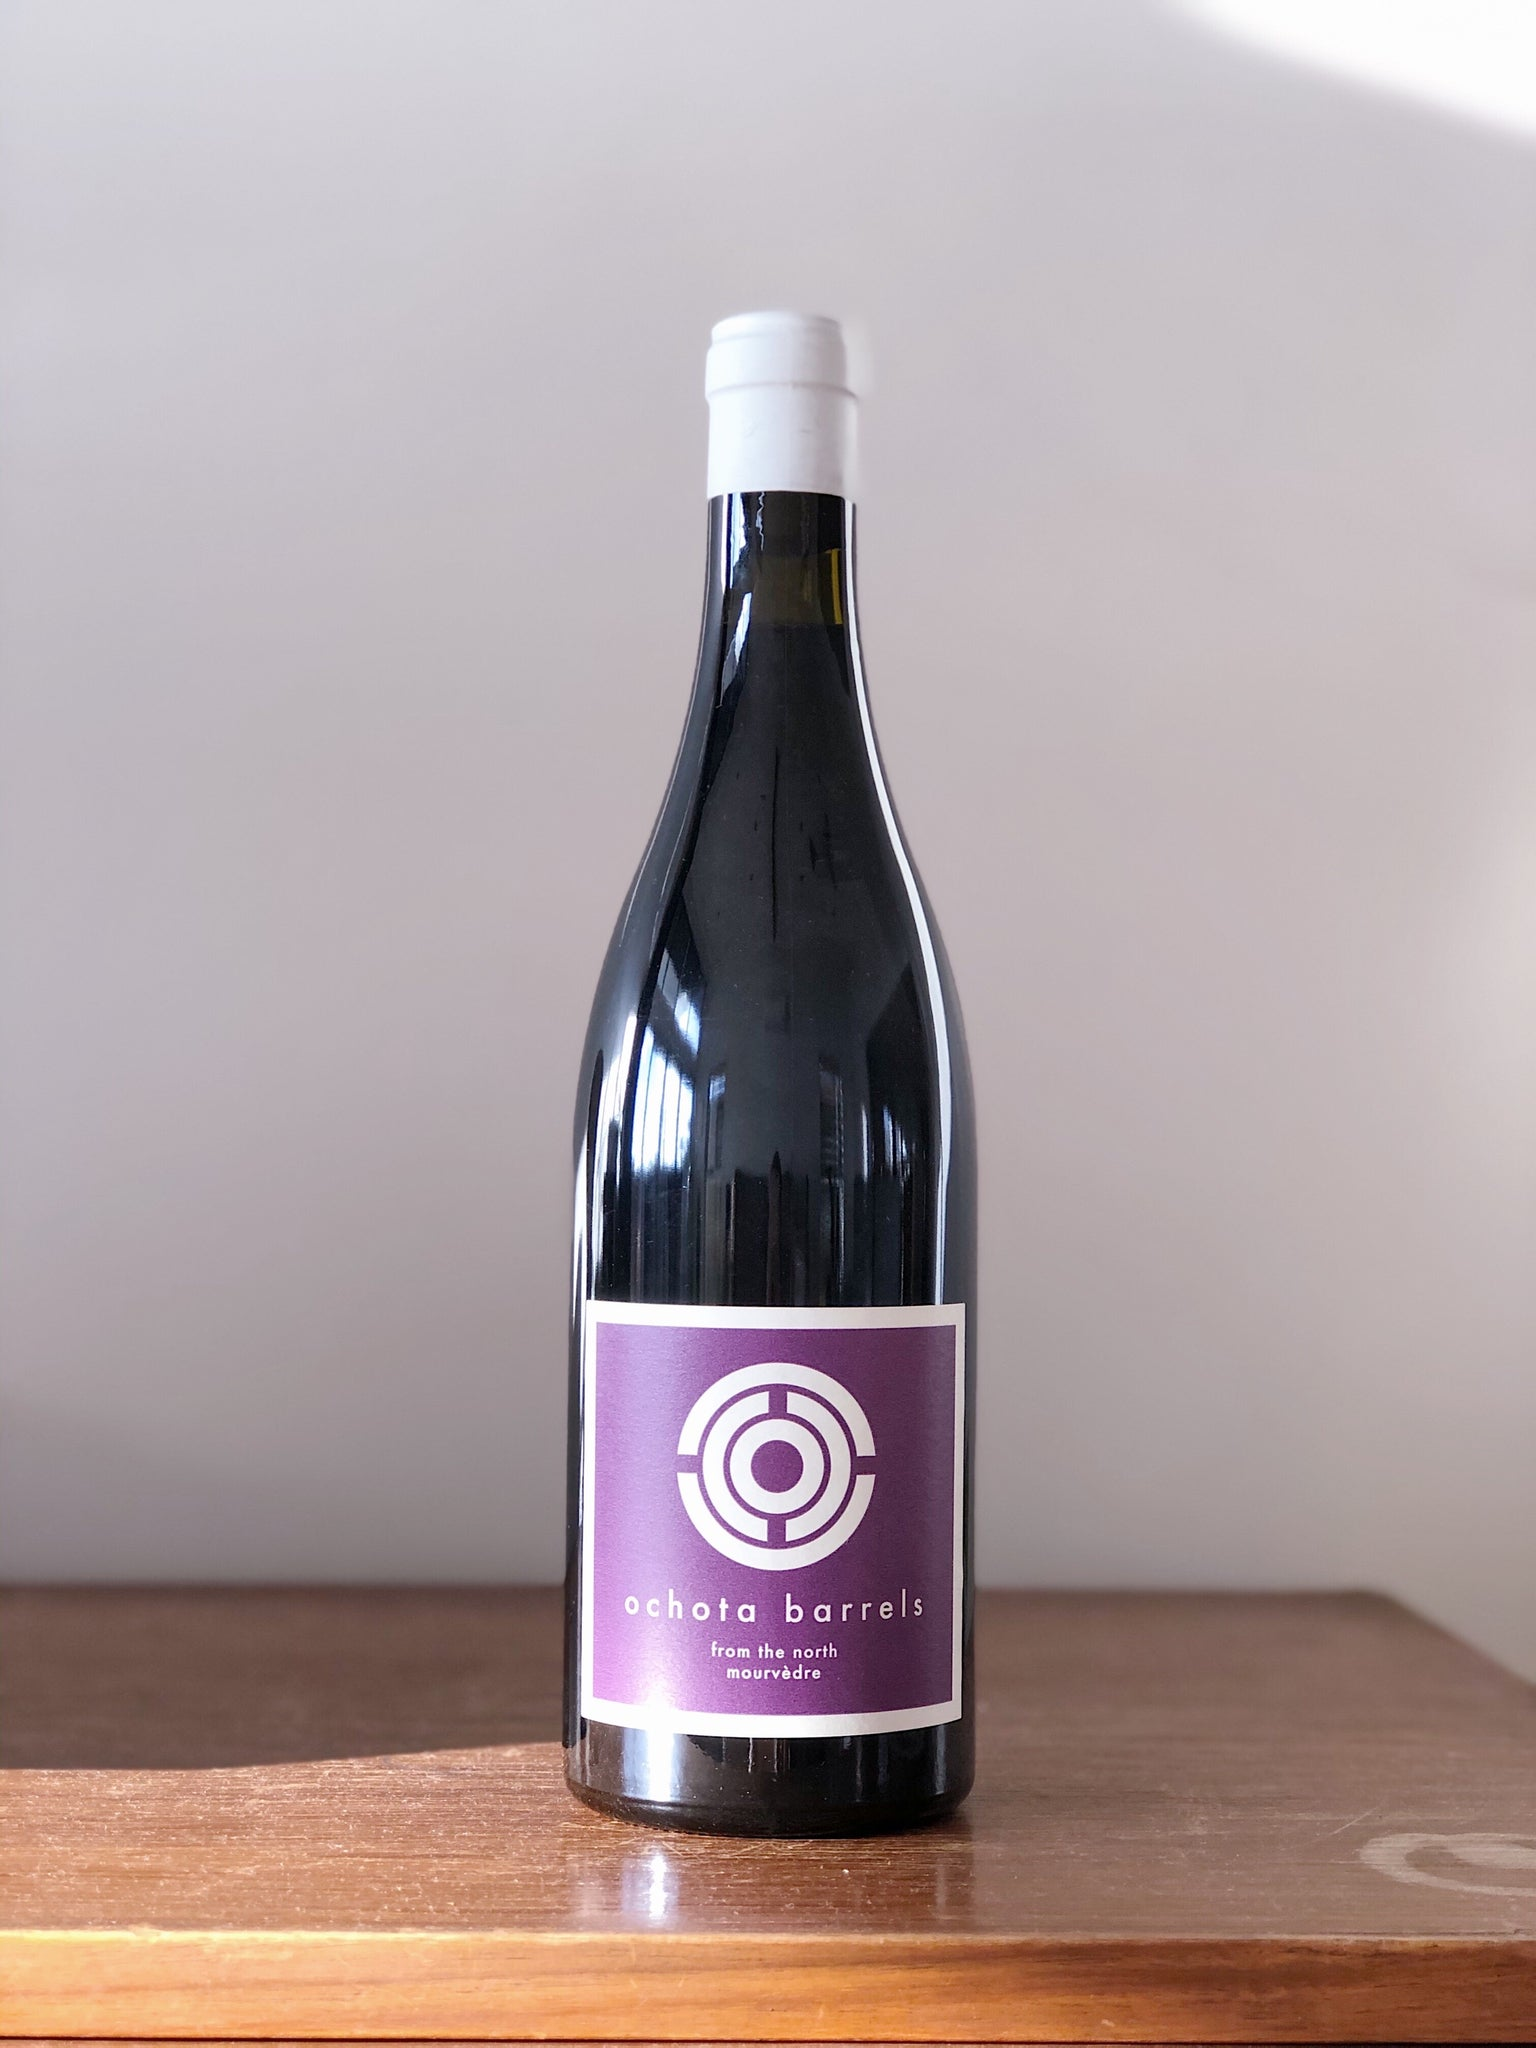 2019 Ochota Barrels From the North Mourvedre